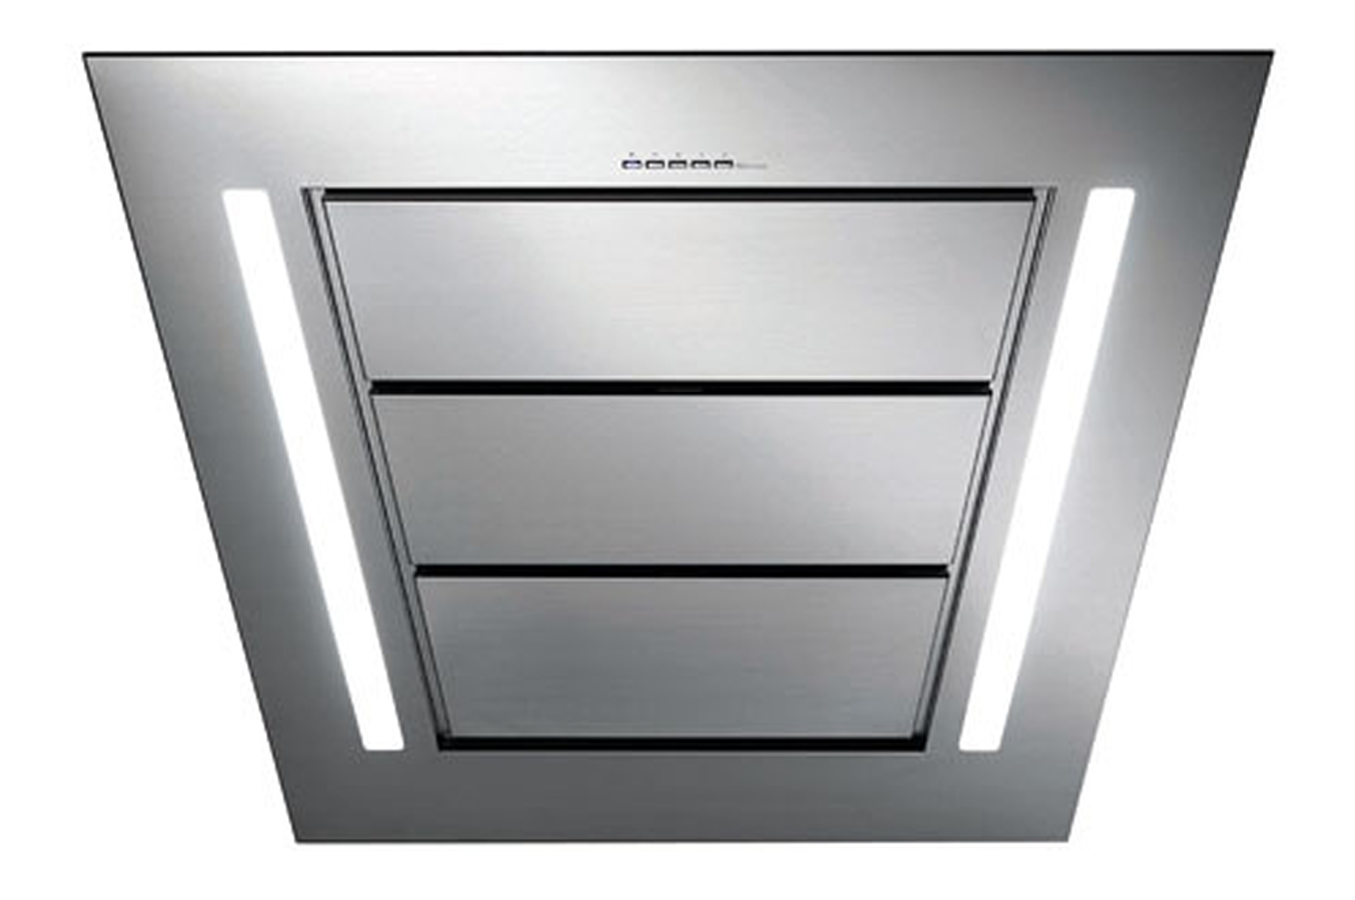 Hotte d corative murale falmec diamante 1430 inox 3349268 - Hotte decorative murale inclinee ...